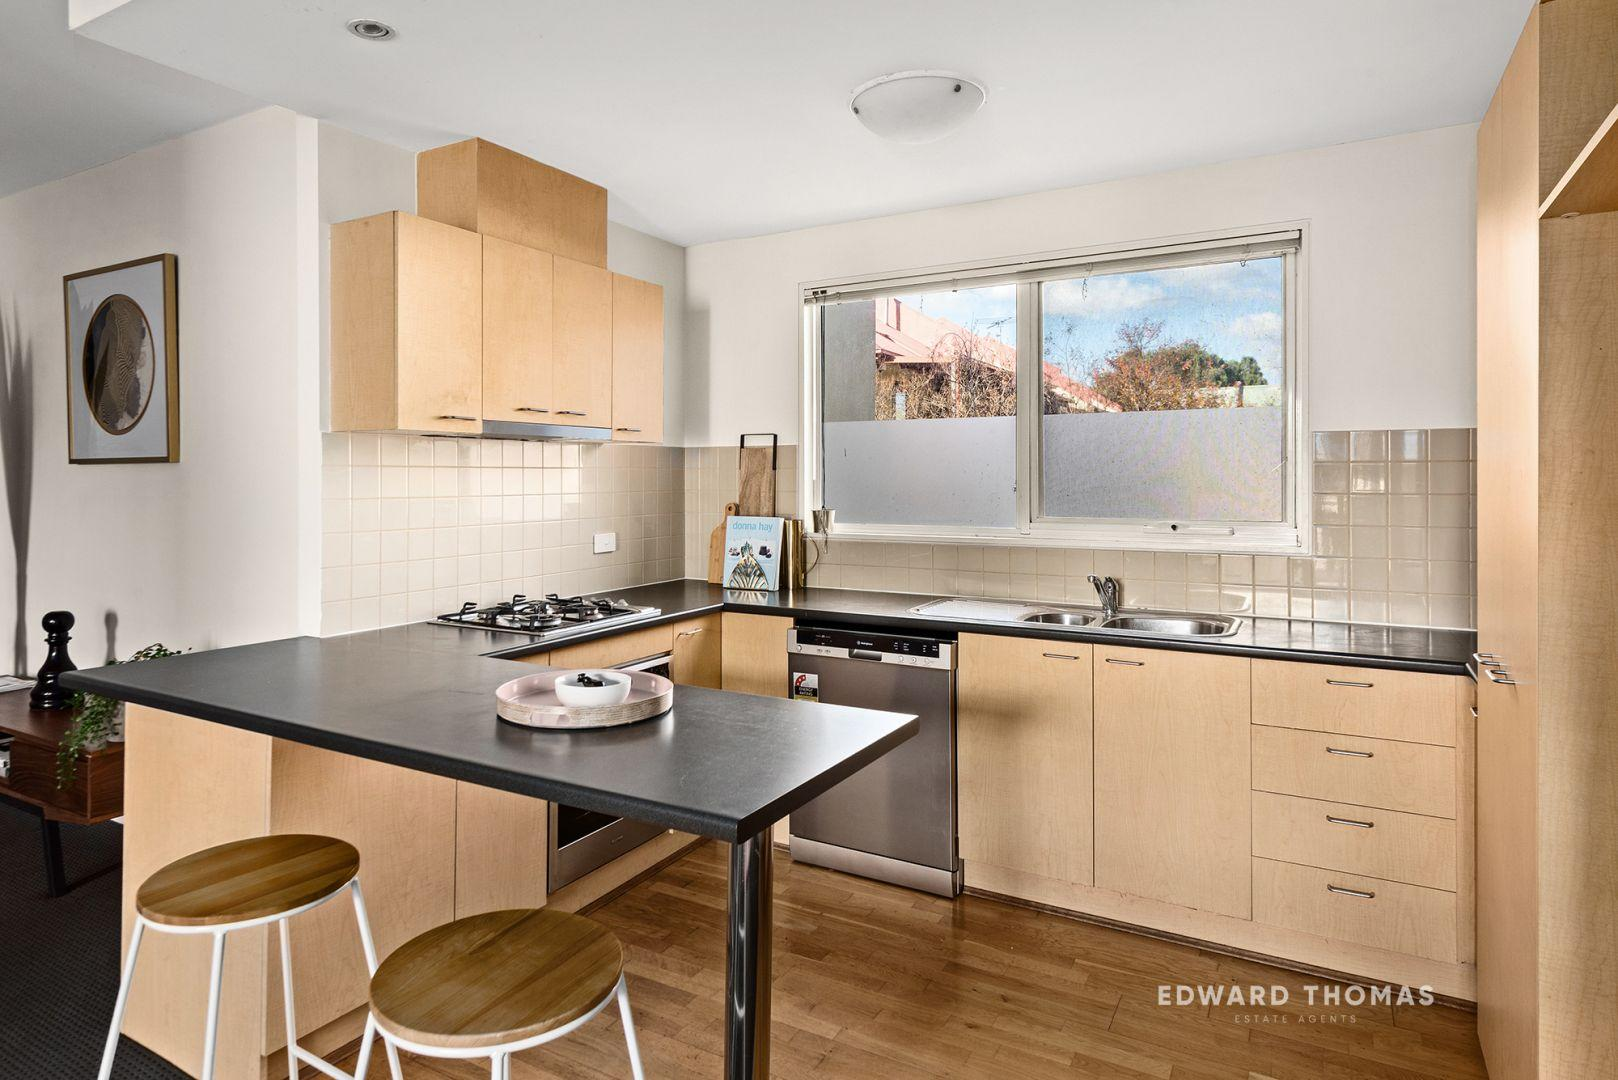 One-bed unit to four-bed home: Here's what $650,000 can buy you around Australia